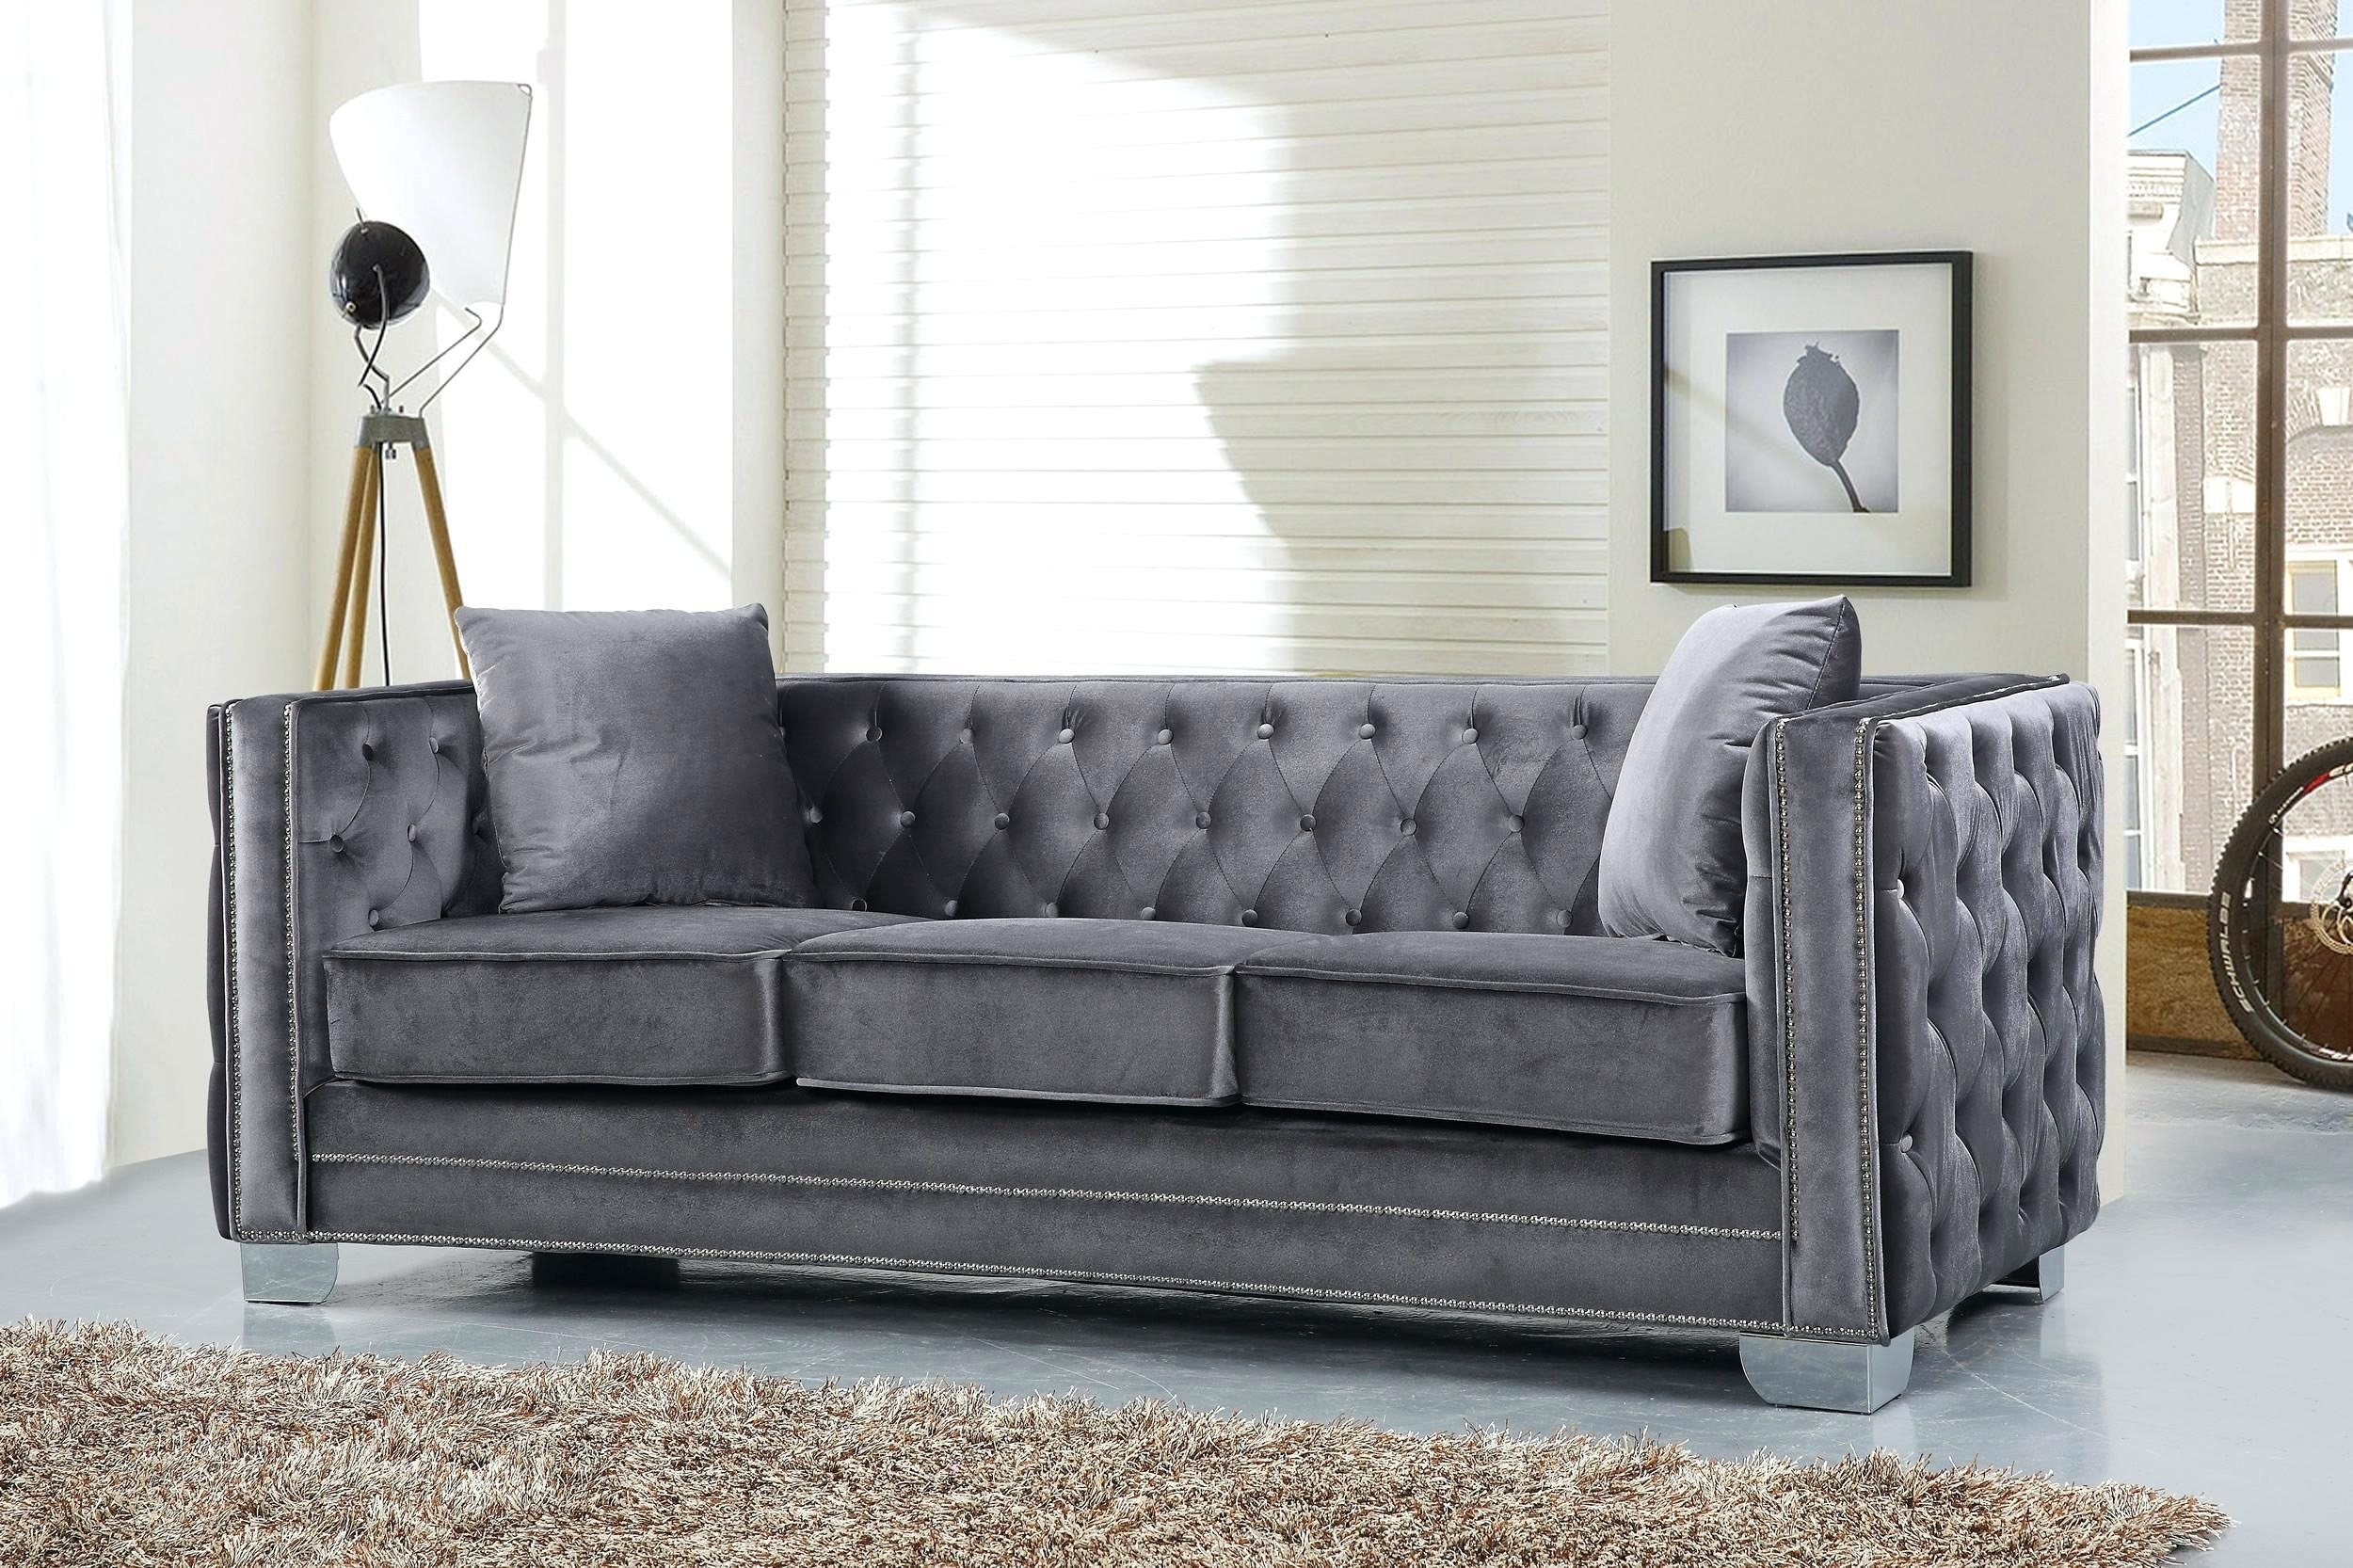 Button Tufted Sofa For Sale Set Velvet #12867 Gallery Within Cheap Tufted Sofas (View 7 of 23)